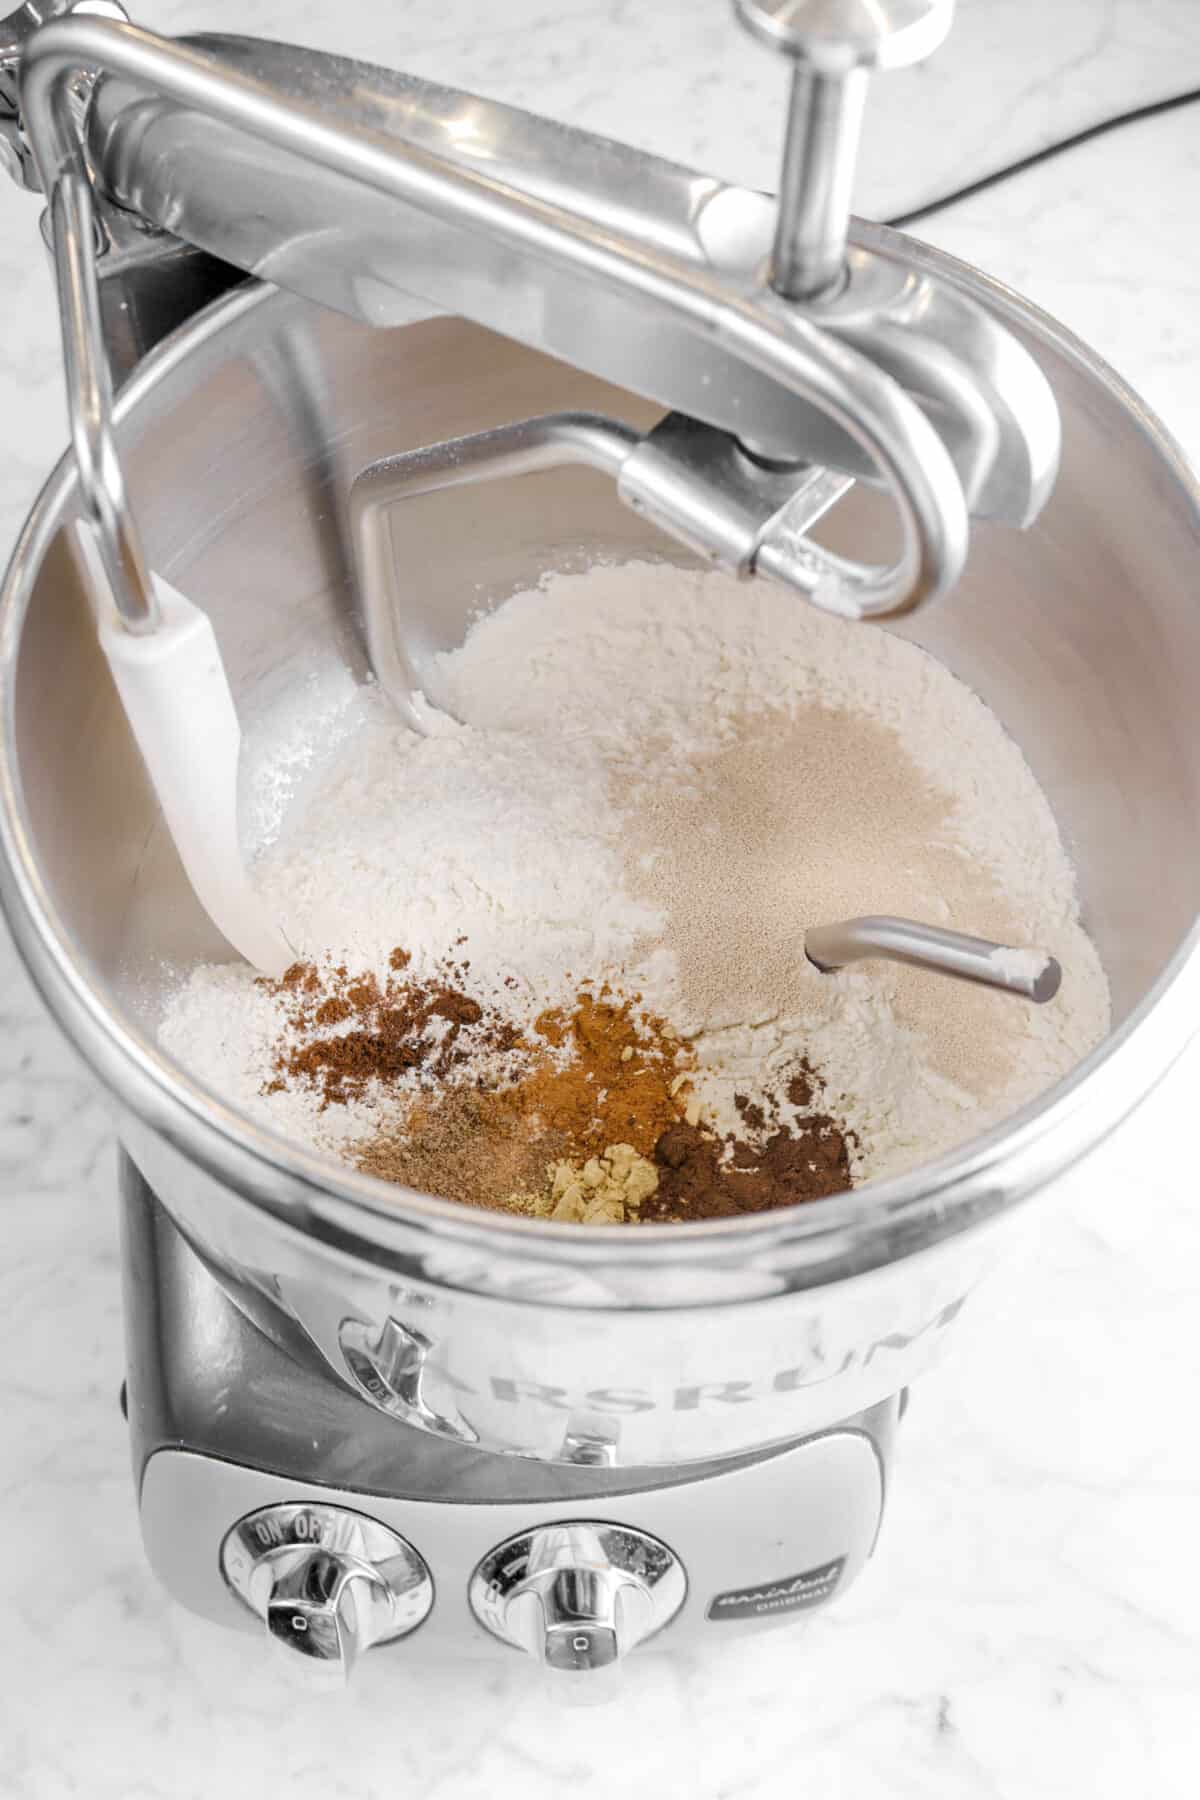 flour, spices, and yeast in a mixer